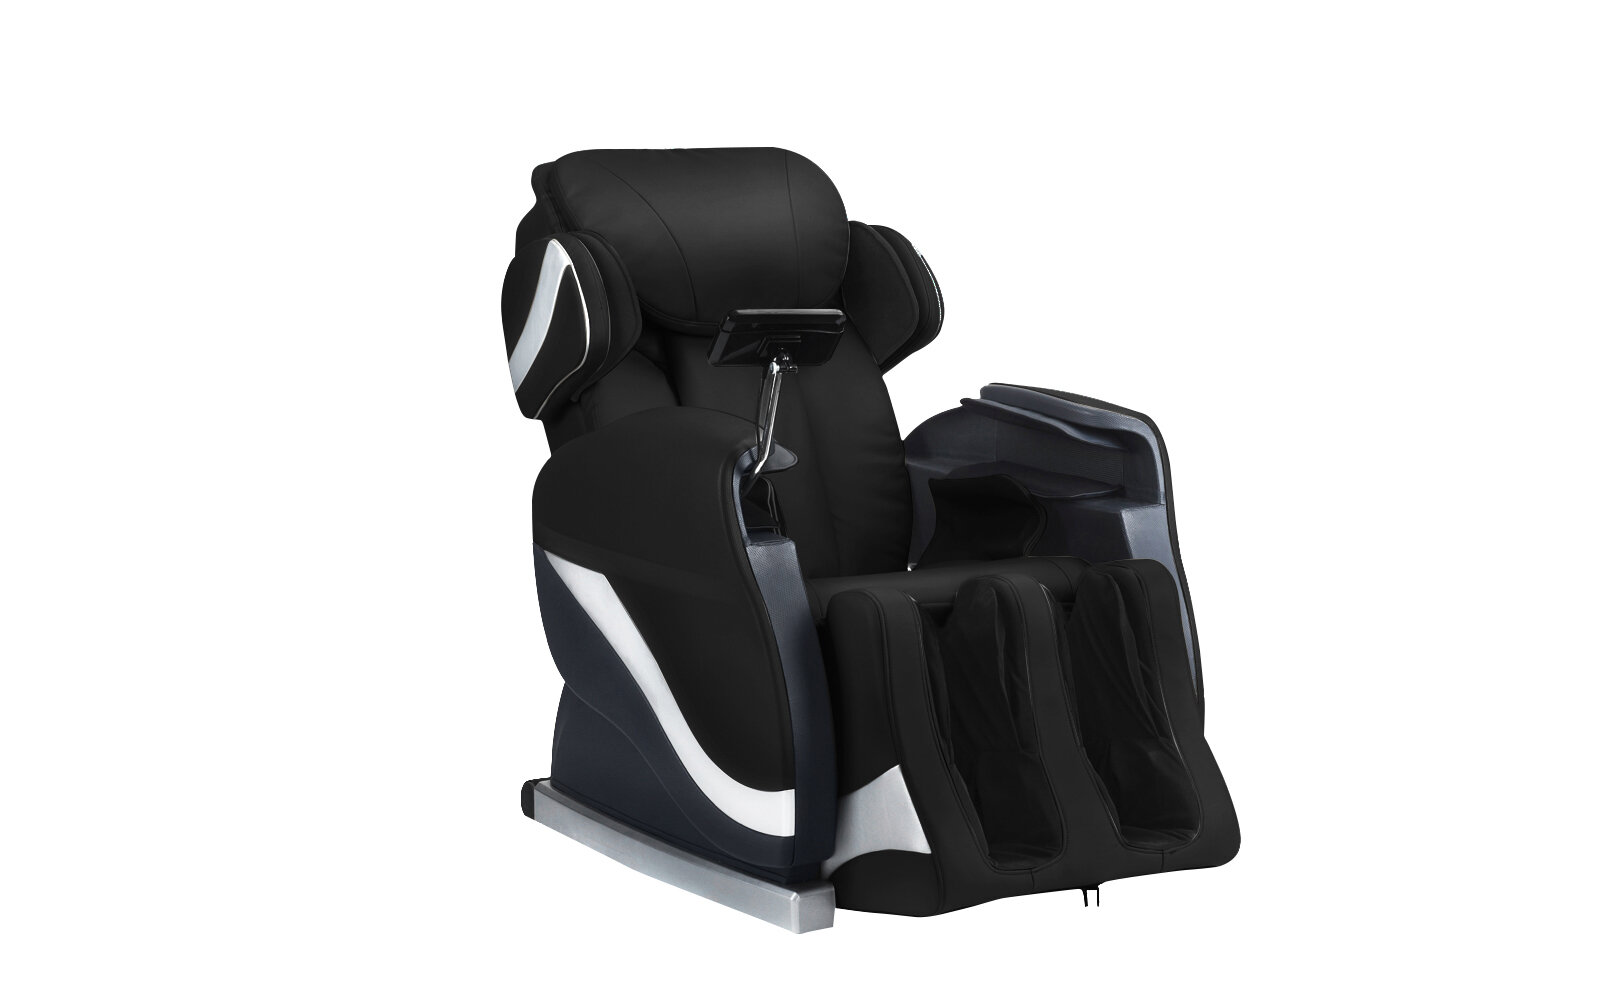 Red Barrel Studio Zero Gravity Massage Chair With Footrest Reviews